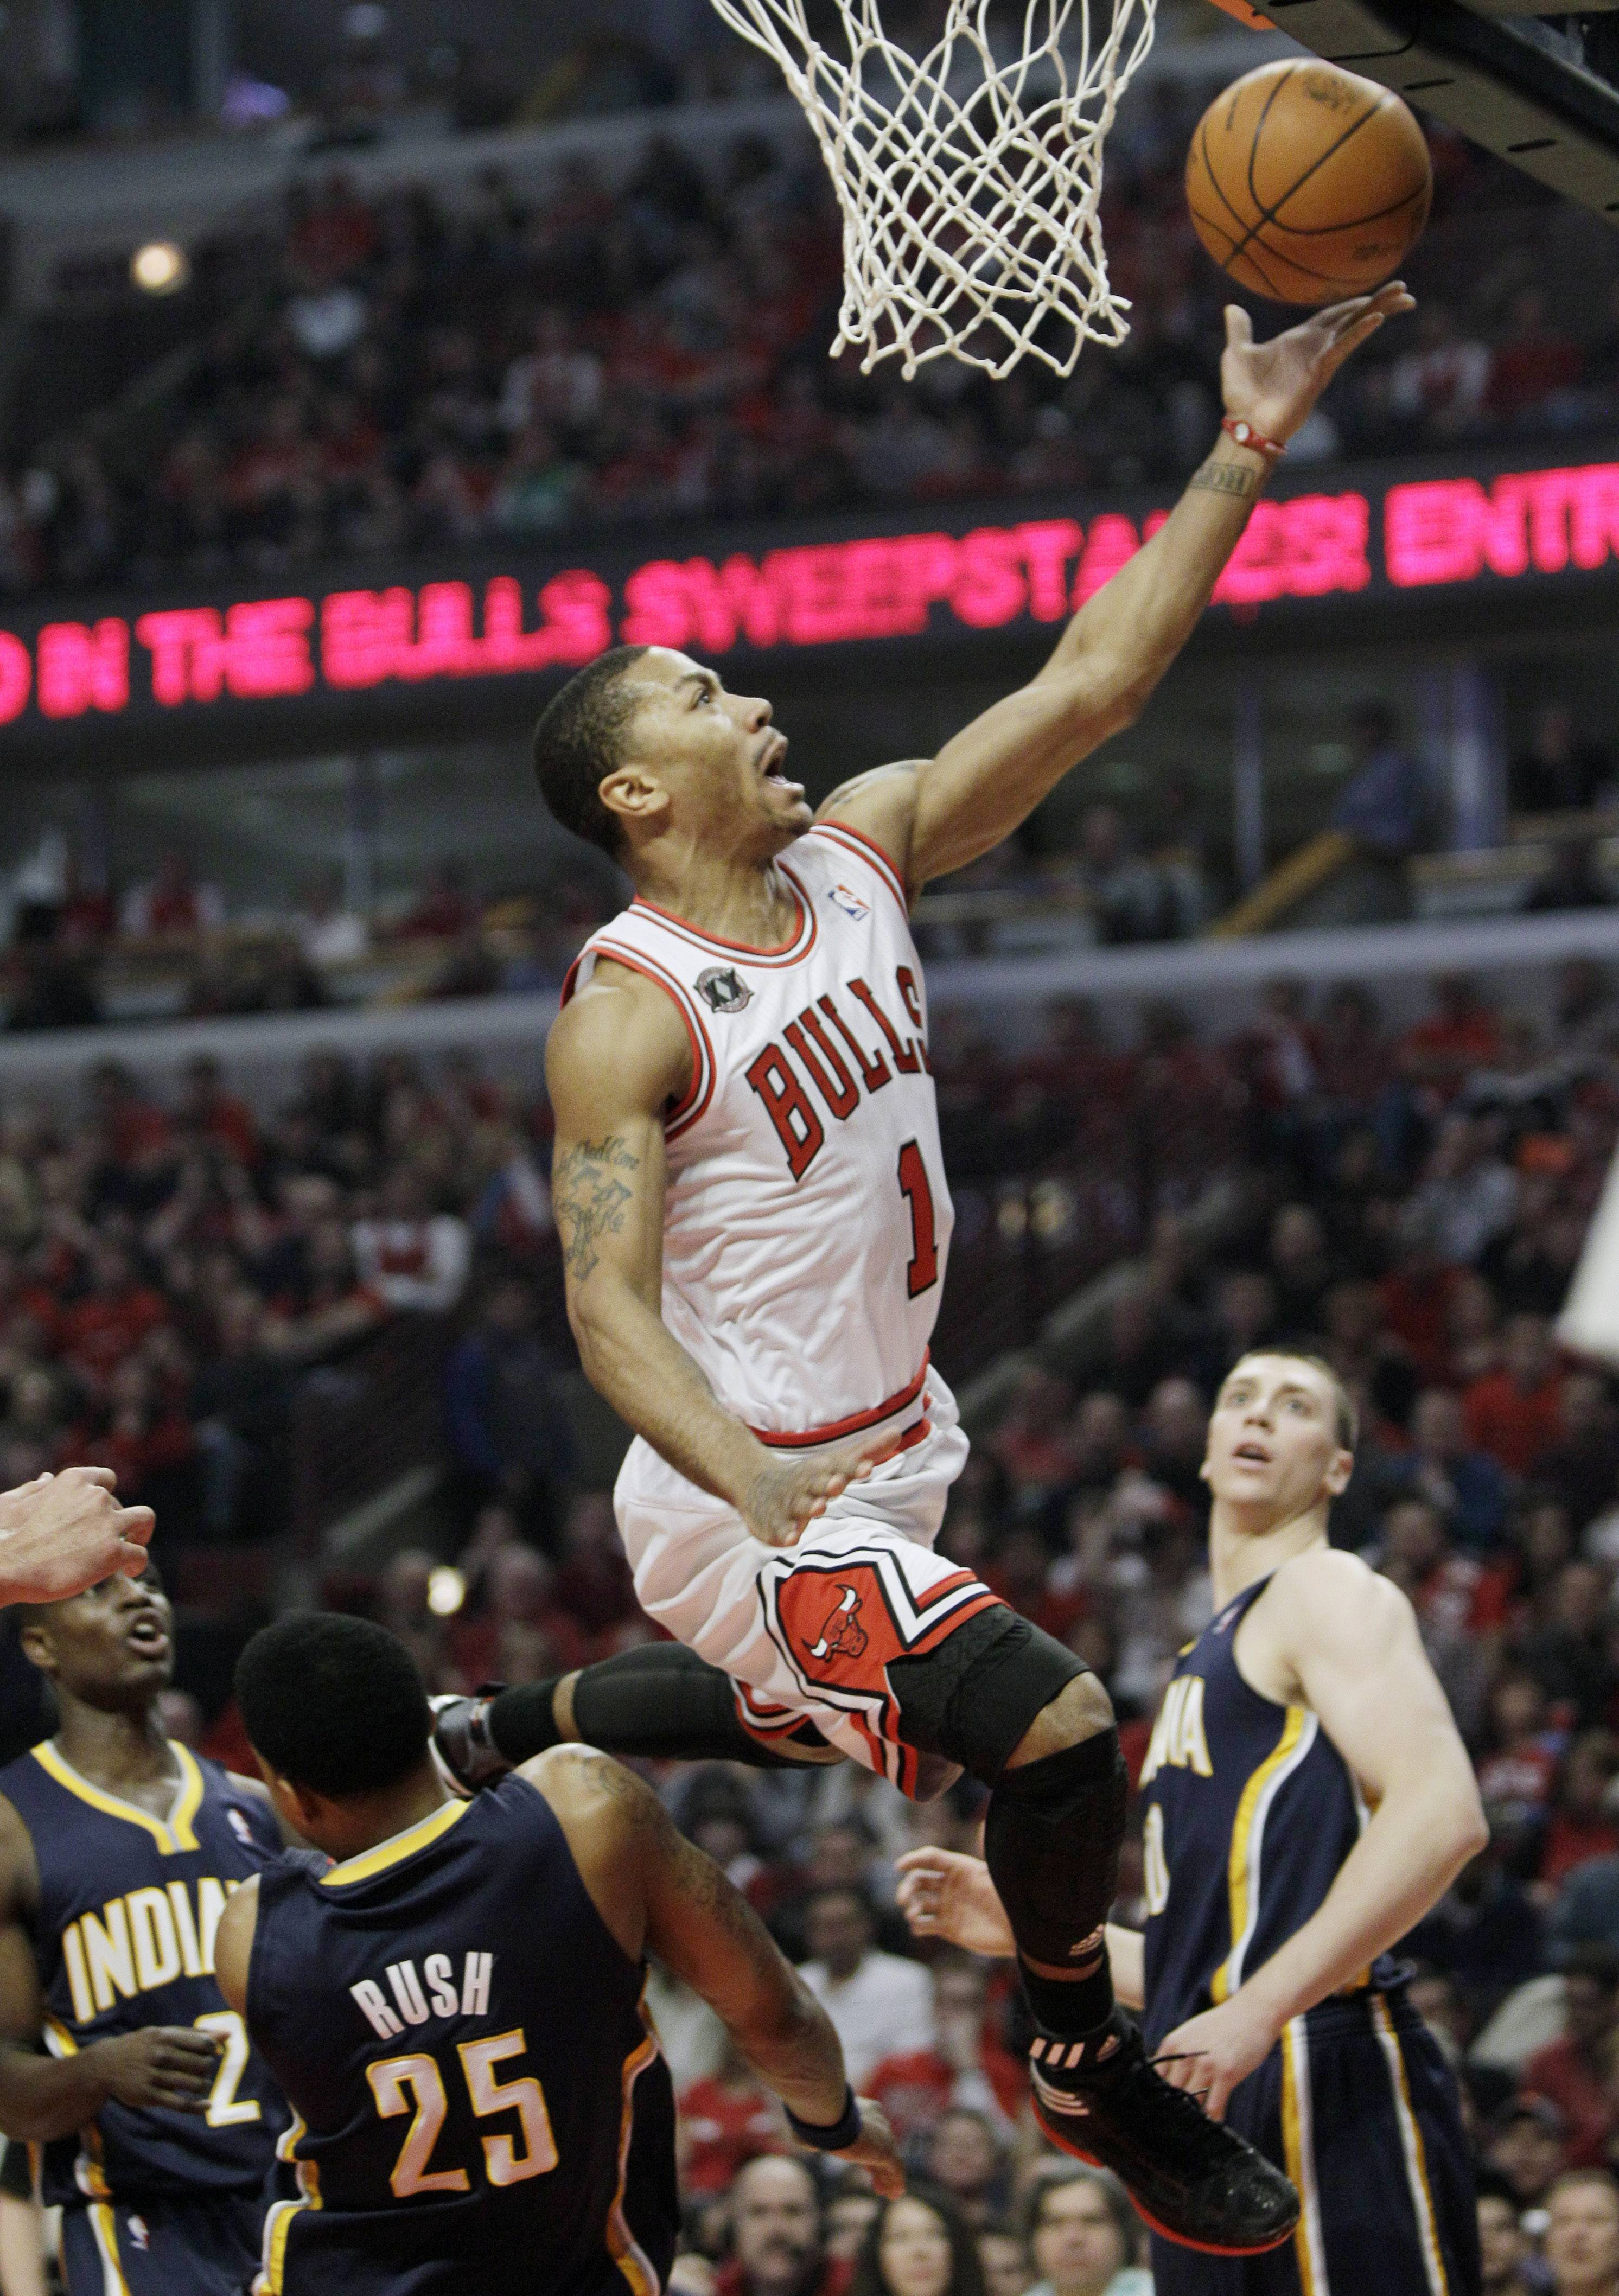 Derrick Rose scored 39 points and added 6 rebounds and 6 assists in the Bulls' 104-99 win over Indiana in Game 1 of the Eastern Conference playoffs.